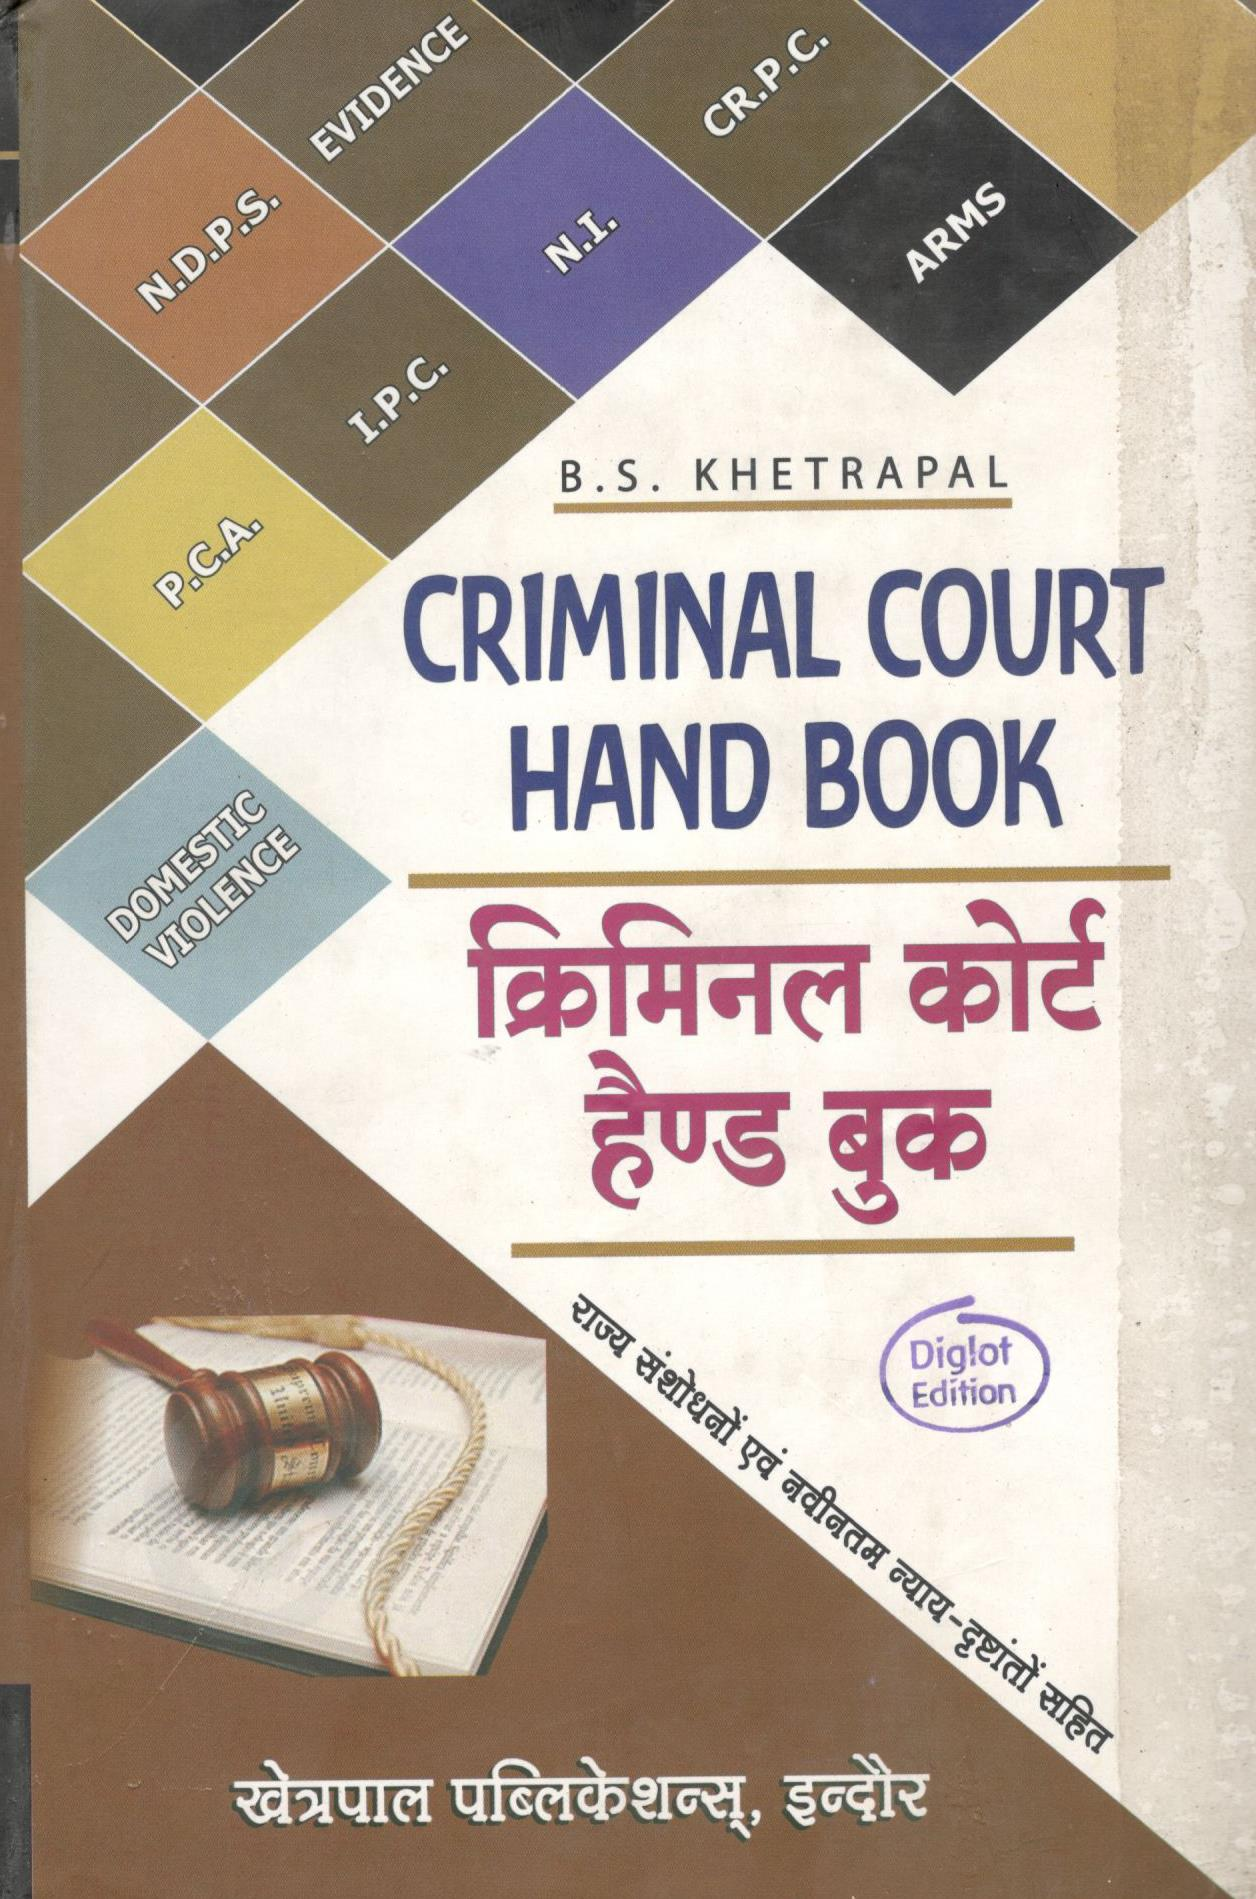 बी.�स.  खेत�रपाल - क�रिमिनल कोर�ट हैंडब�क / Criminal Court Hand book